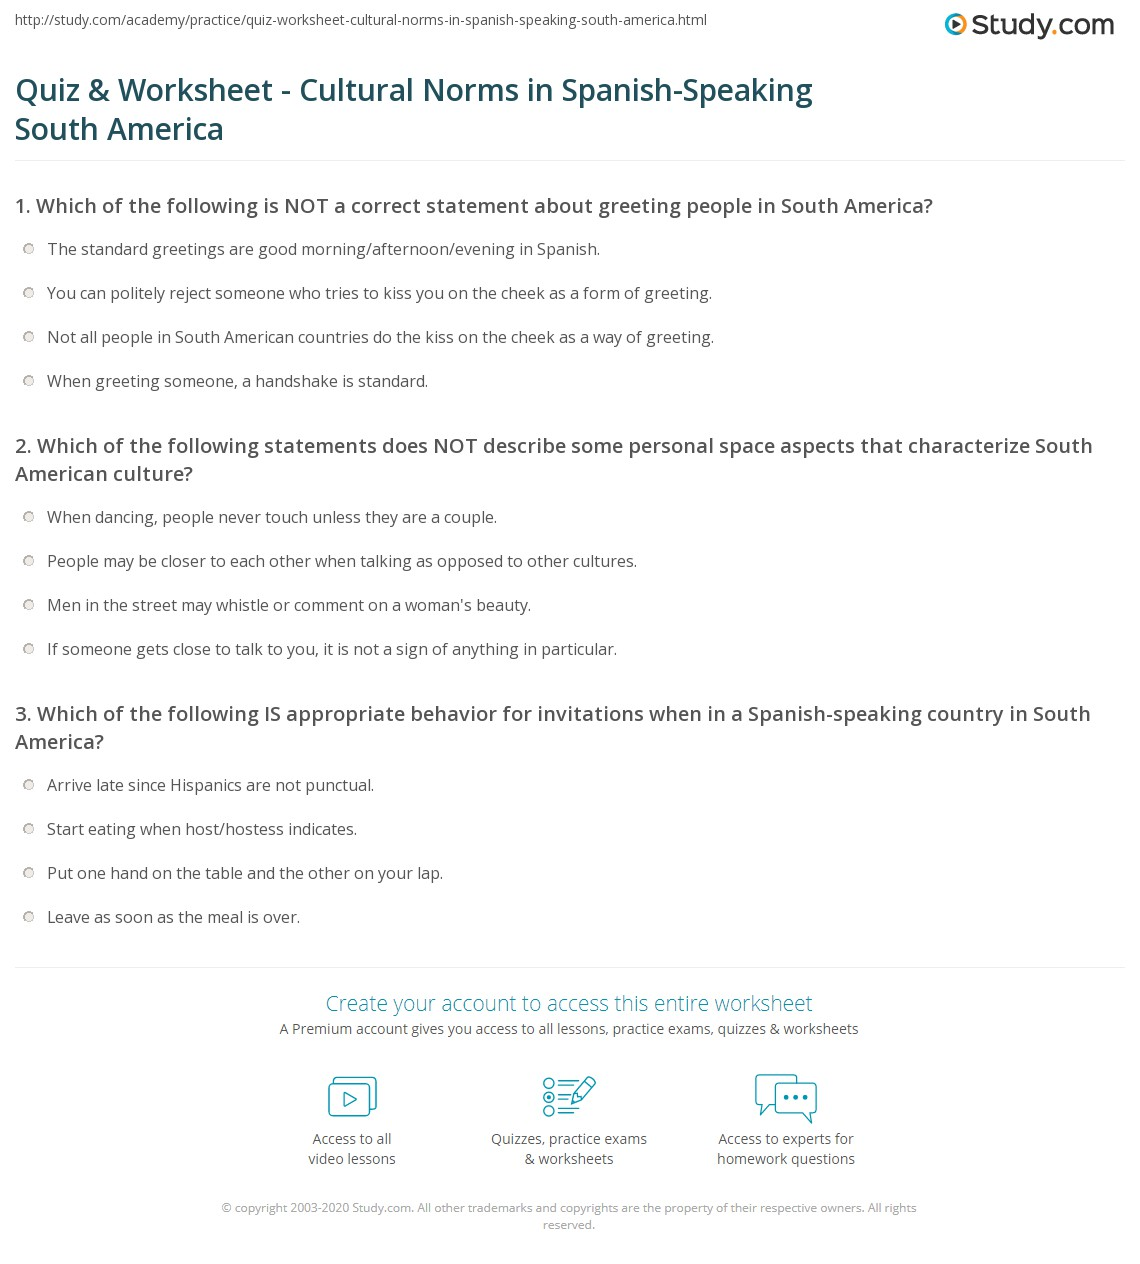 Quiz Worksheet Cultural Norms In Spanish Speaking South America